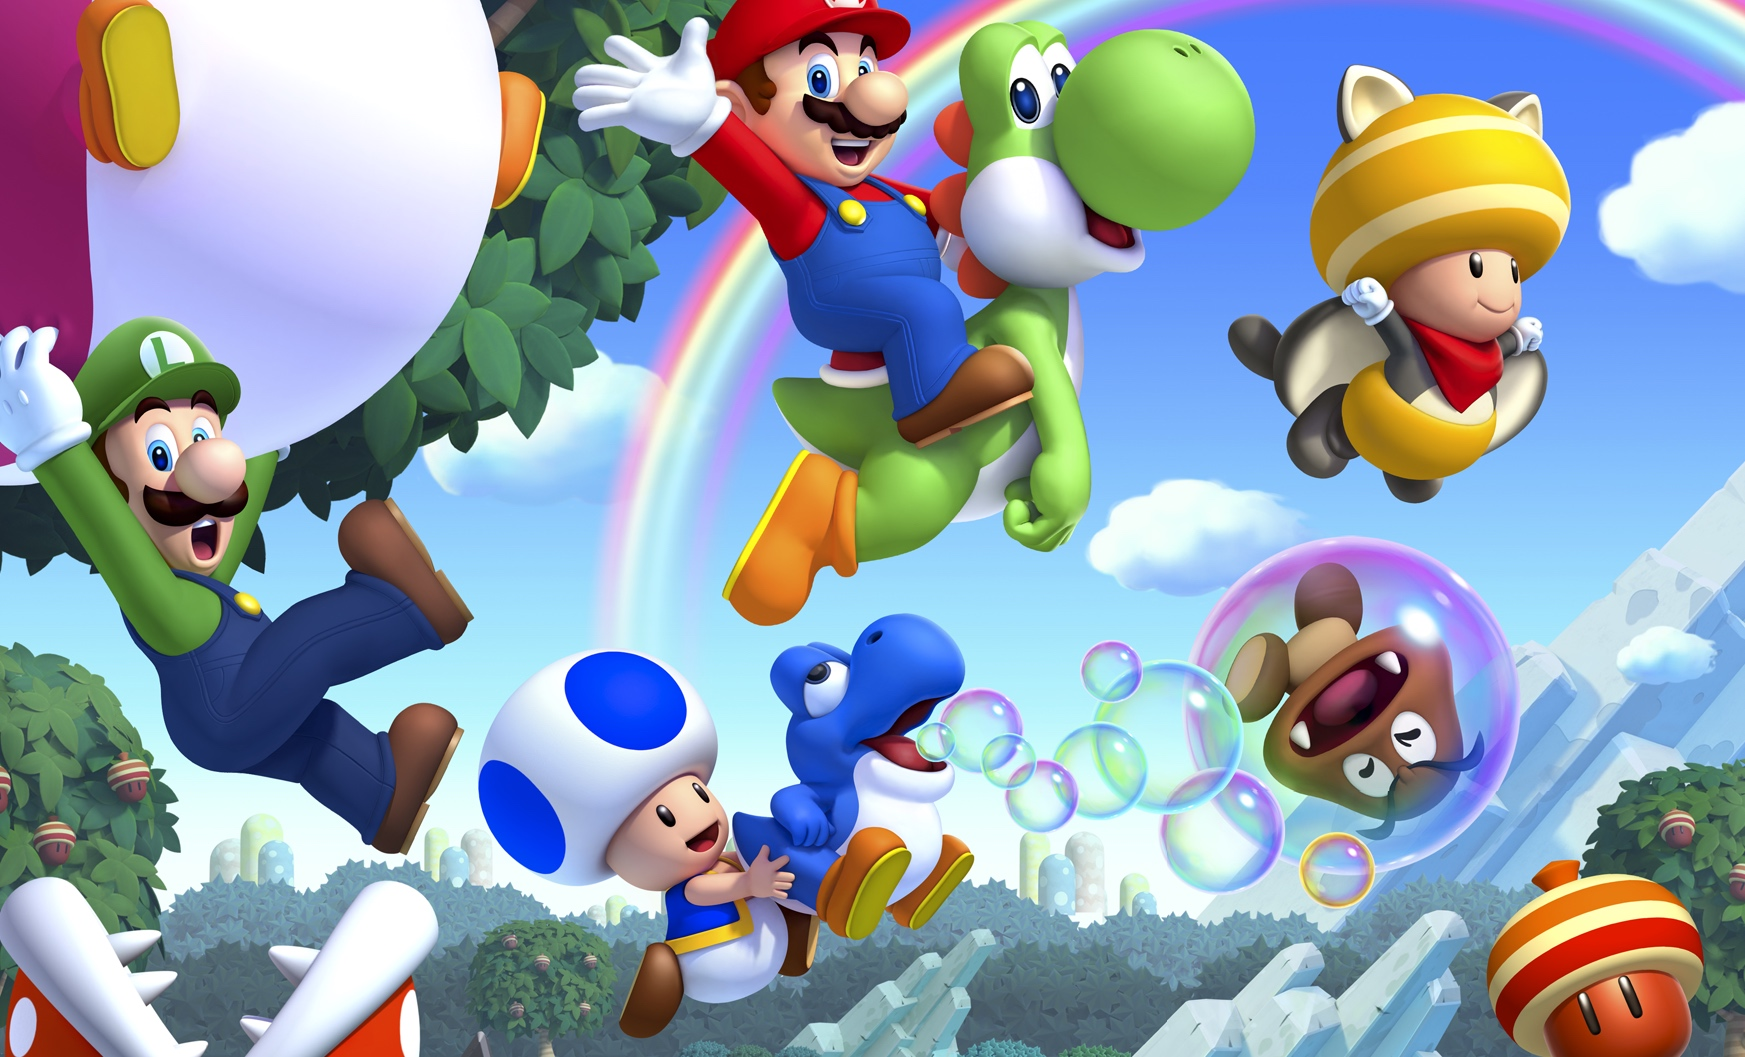 Yes, Blue Toad is playable in New Super Mario Bros. U Deluxe, with a catch Cover